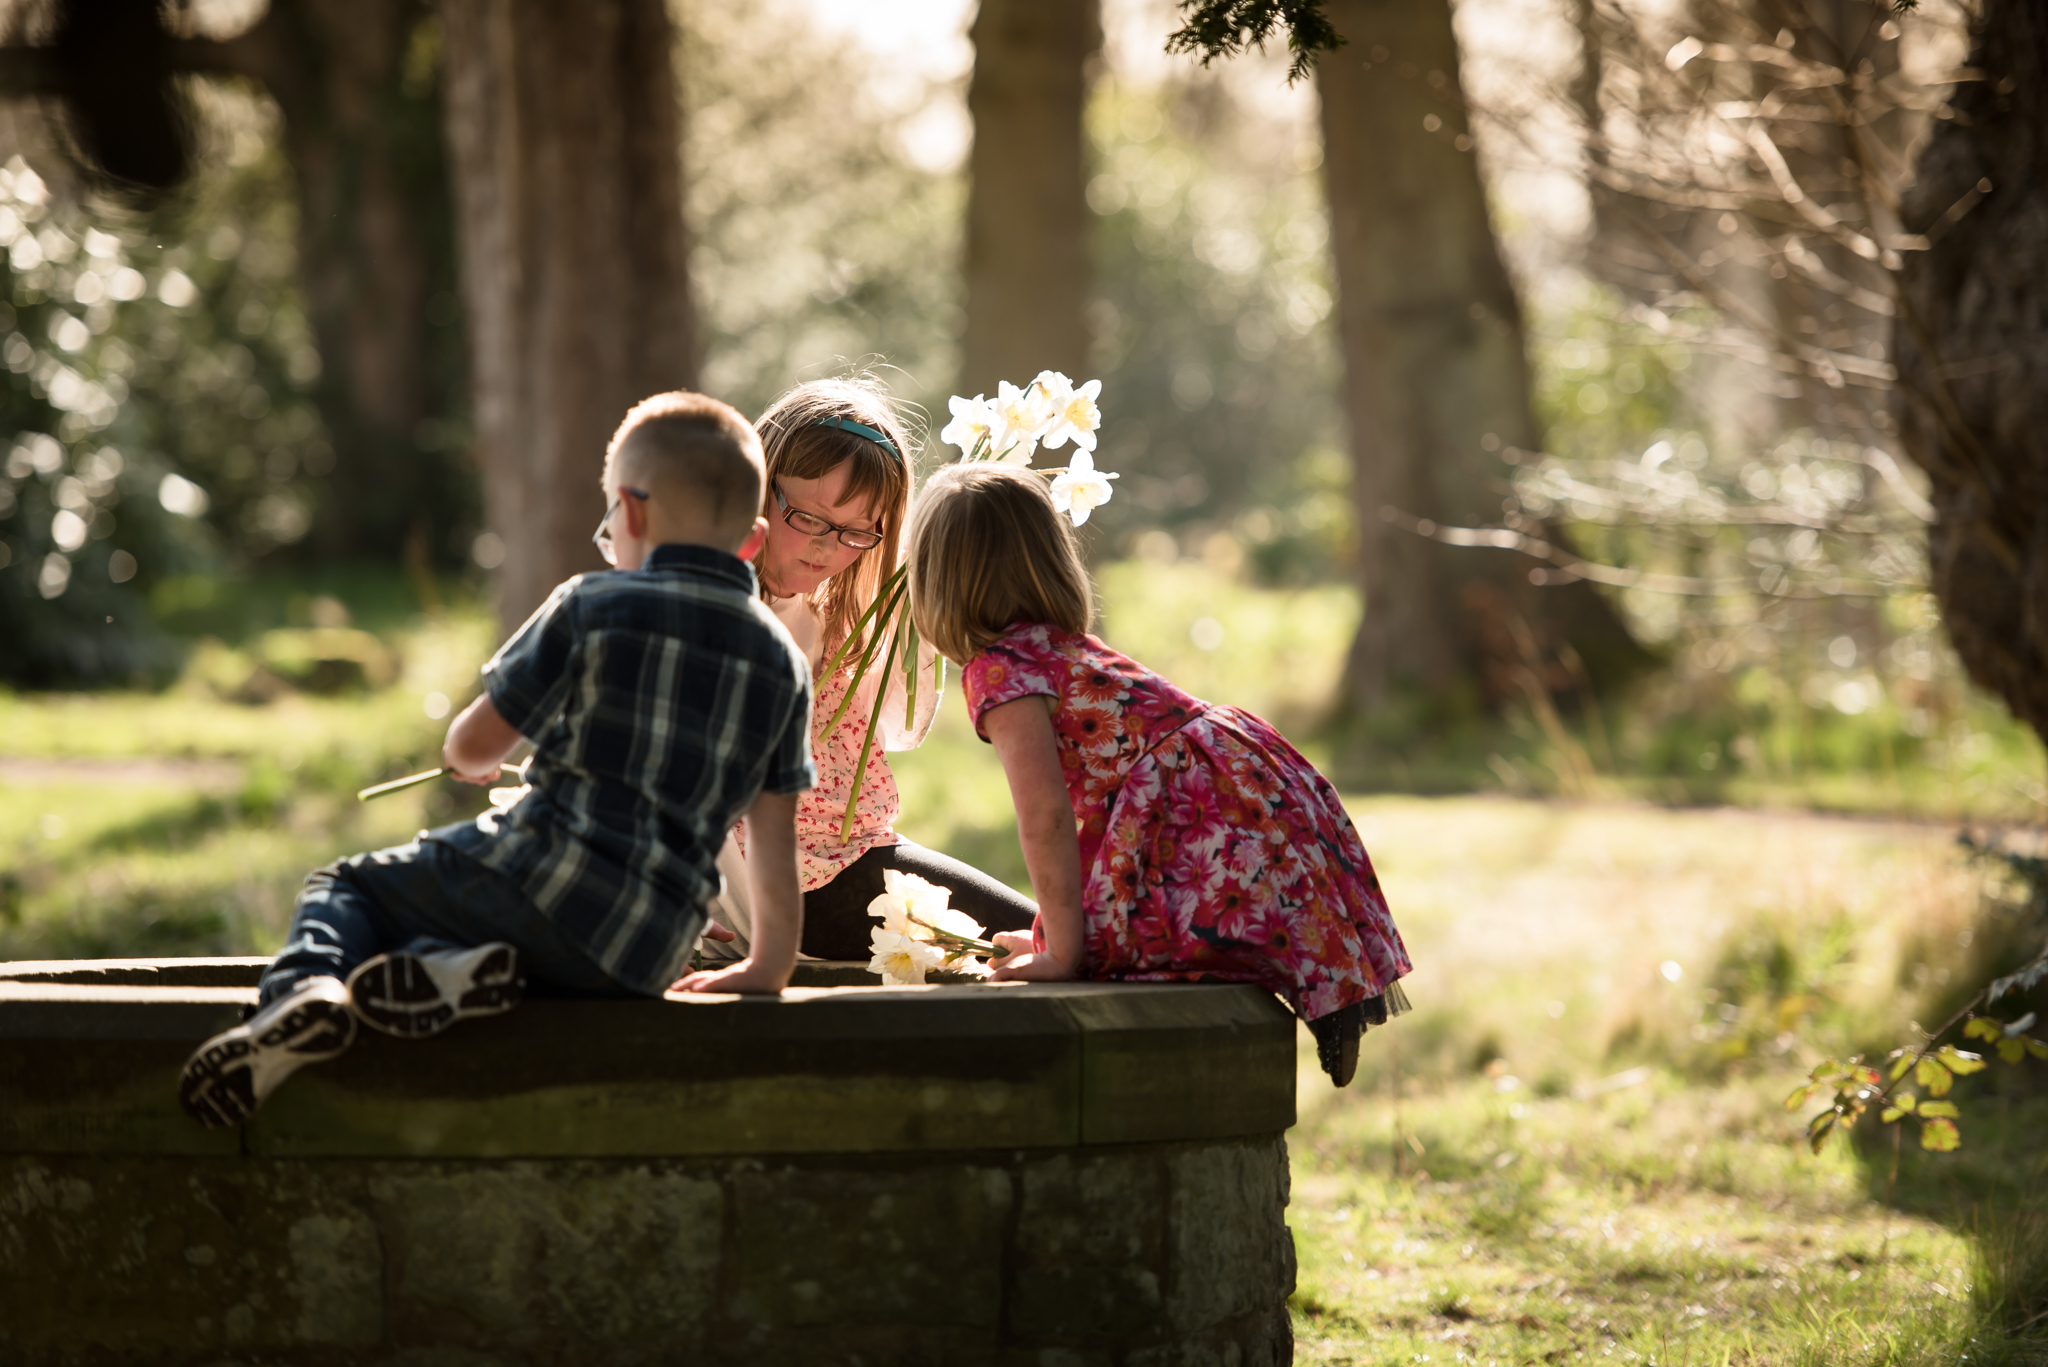 Family photographer Edinburgh - two little girls and little boy sitting on the well at Lauriston Castle in the evening sunshine